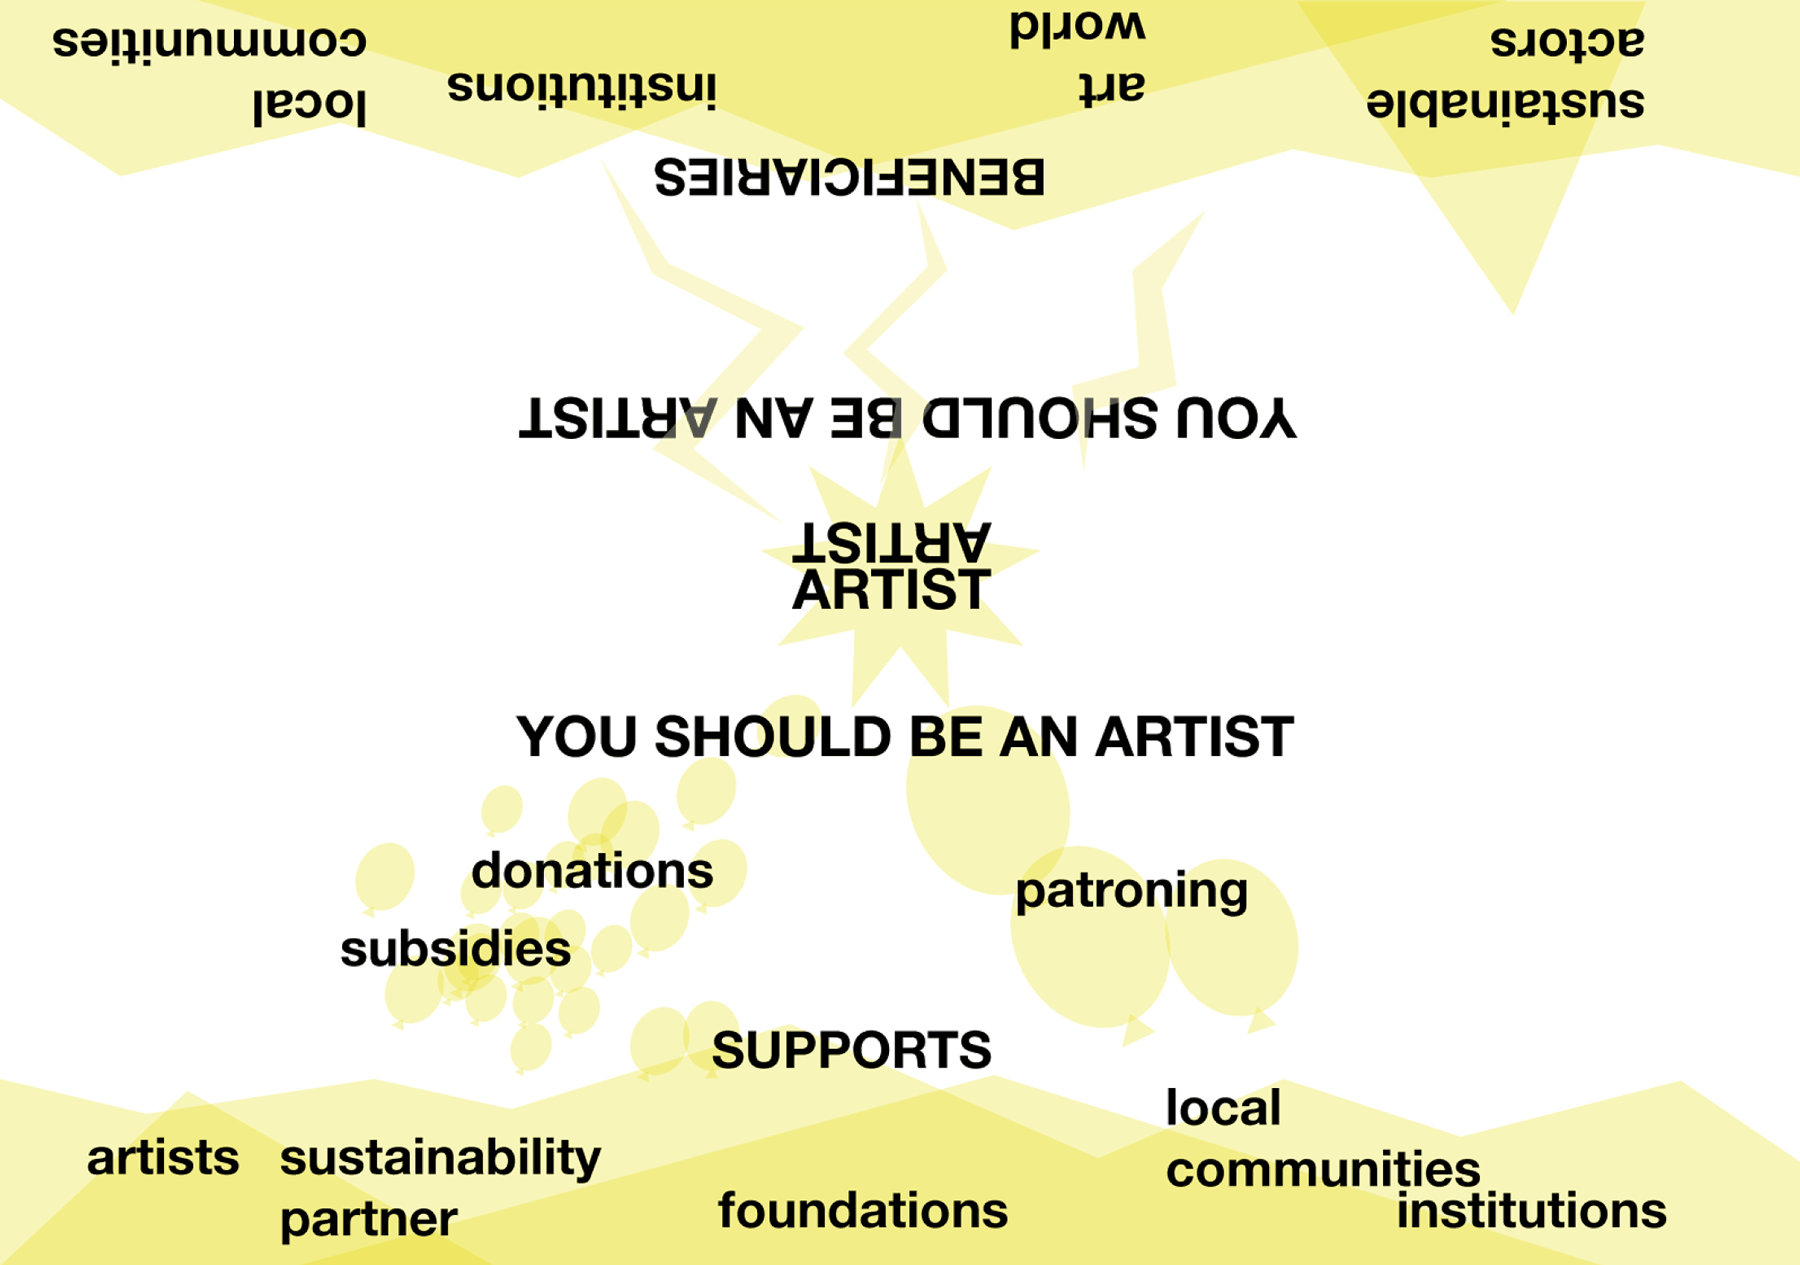 You-Should-Be-an-Artist-04.png